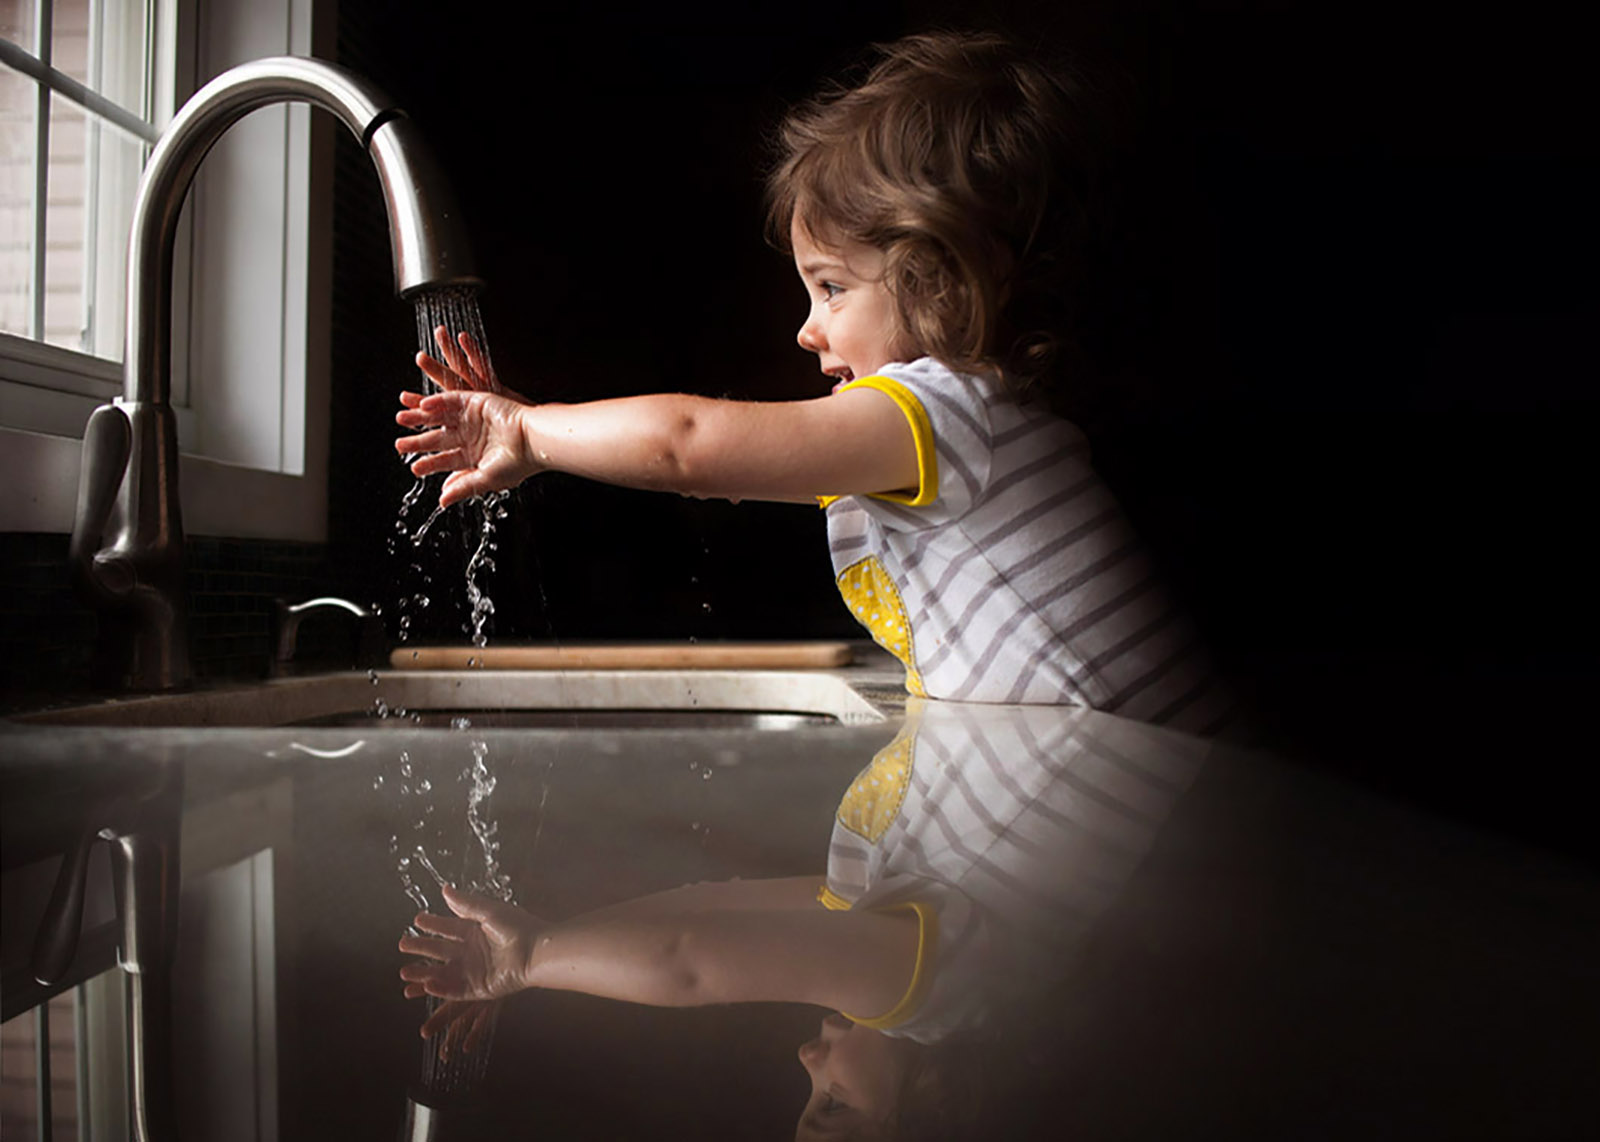 girls playing in kitchen sink